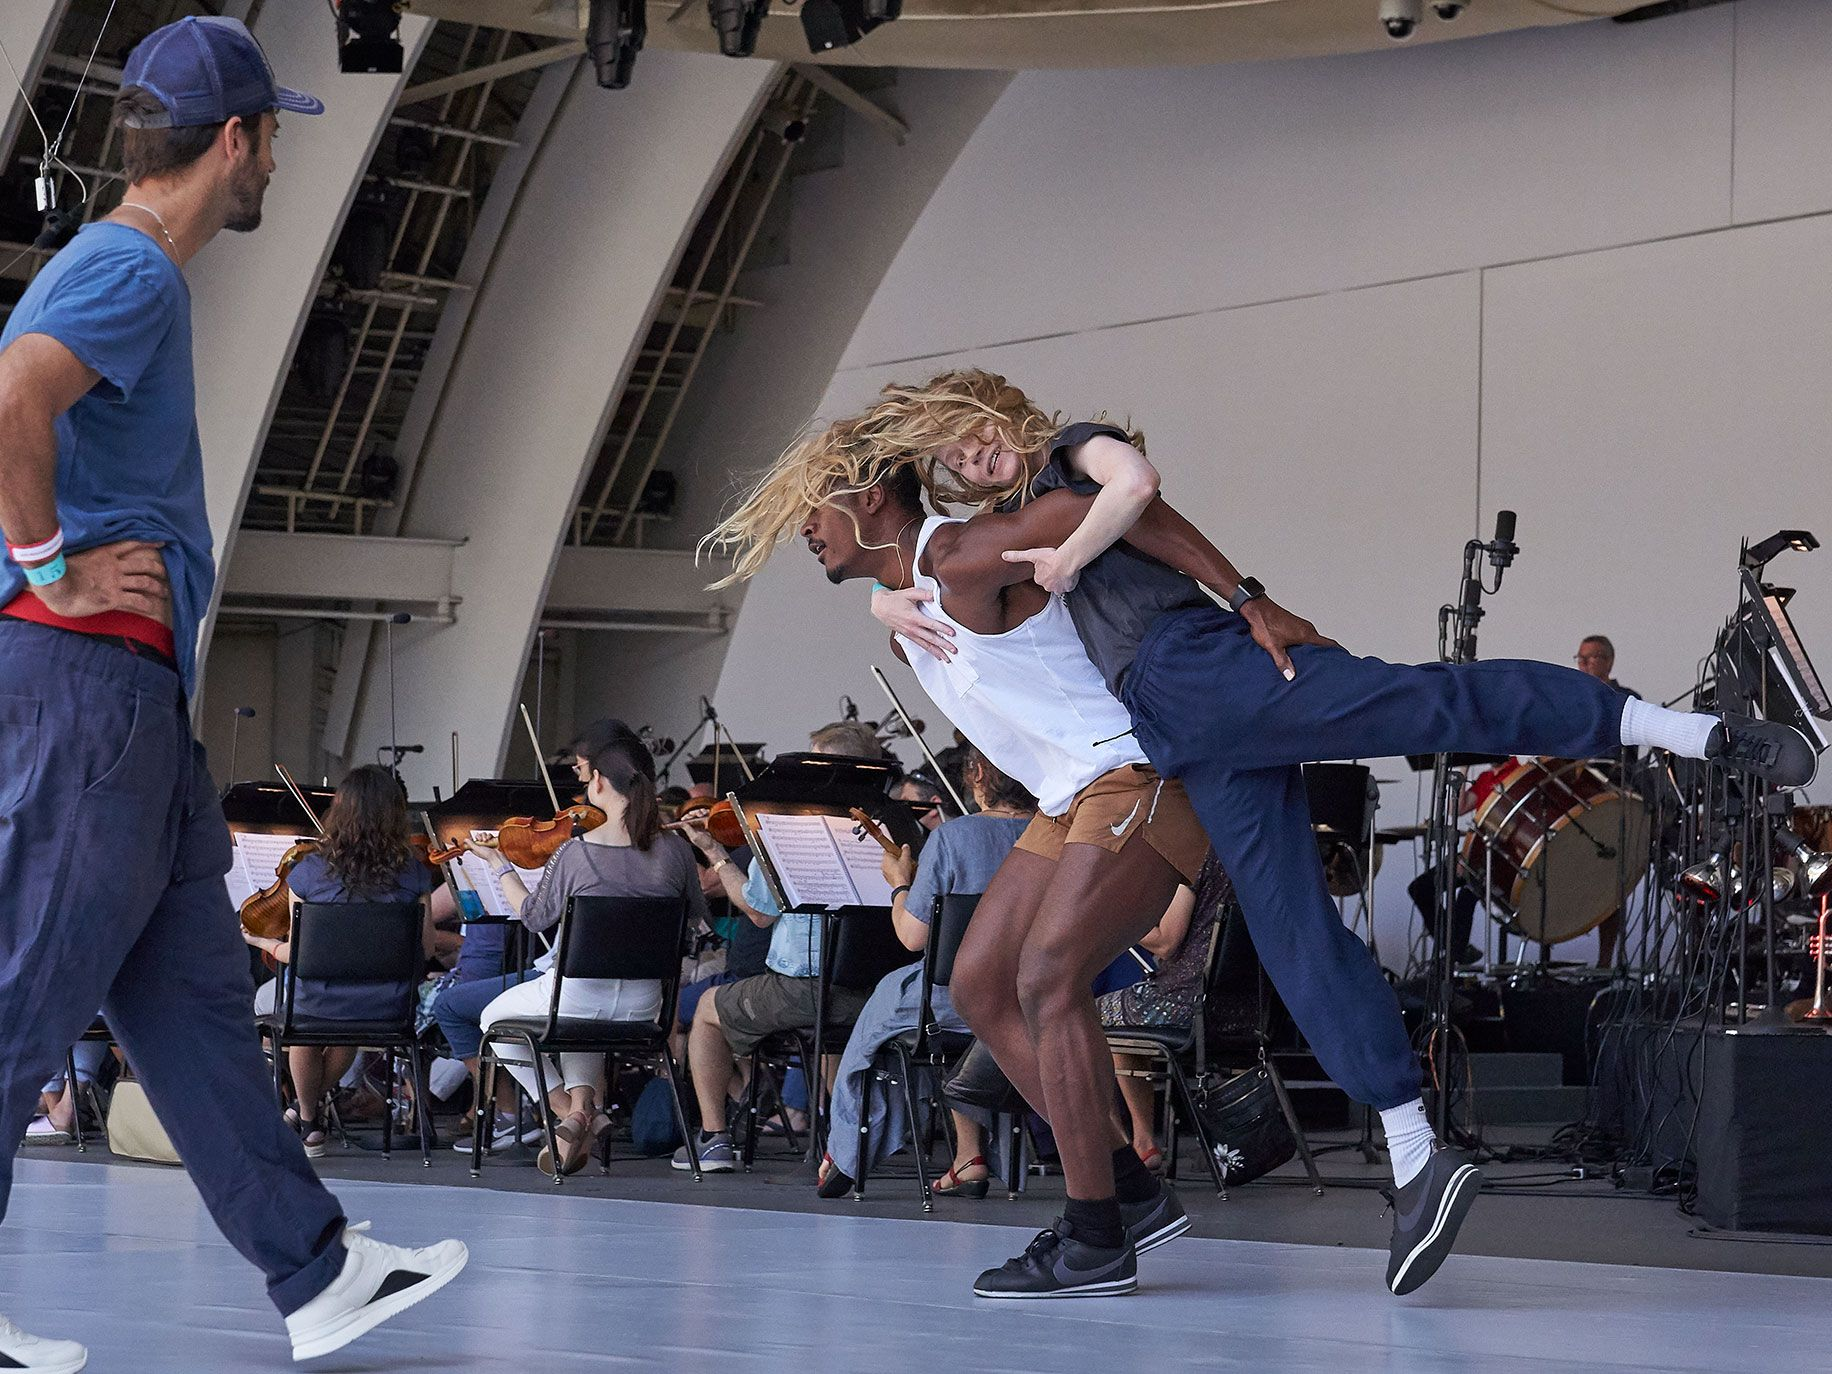 L.A. Dance Project artistic director Benjamin Millepied works with the company's dancers at a rehearsal of Romeo and Juliet at the Hollywood Bowl.